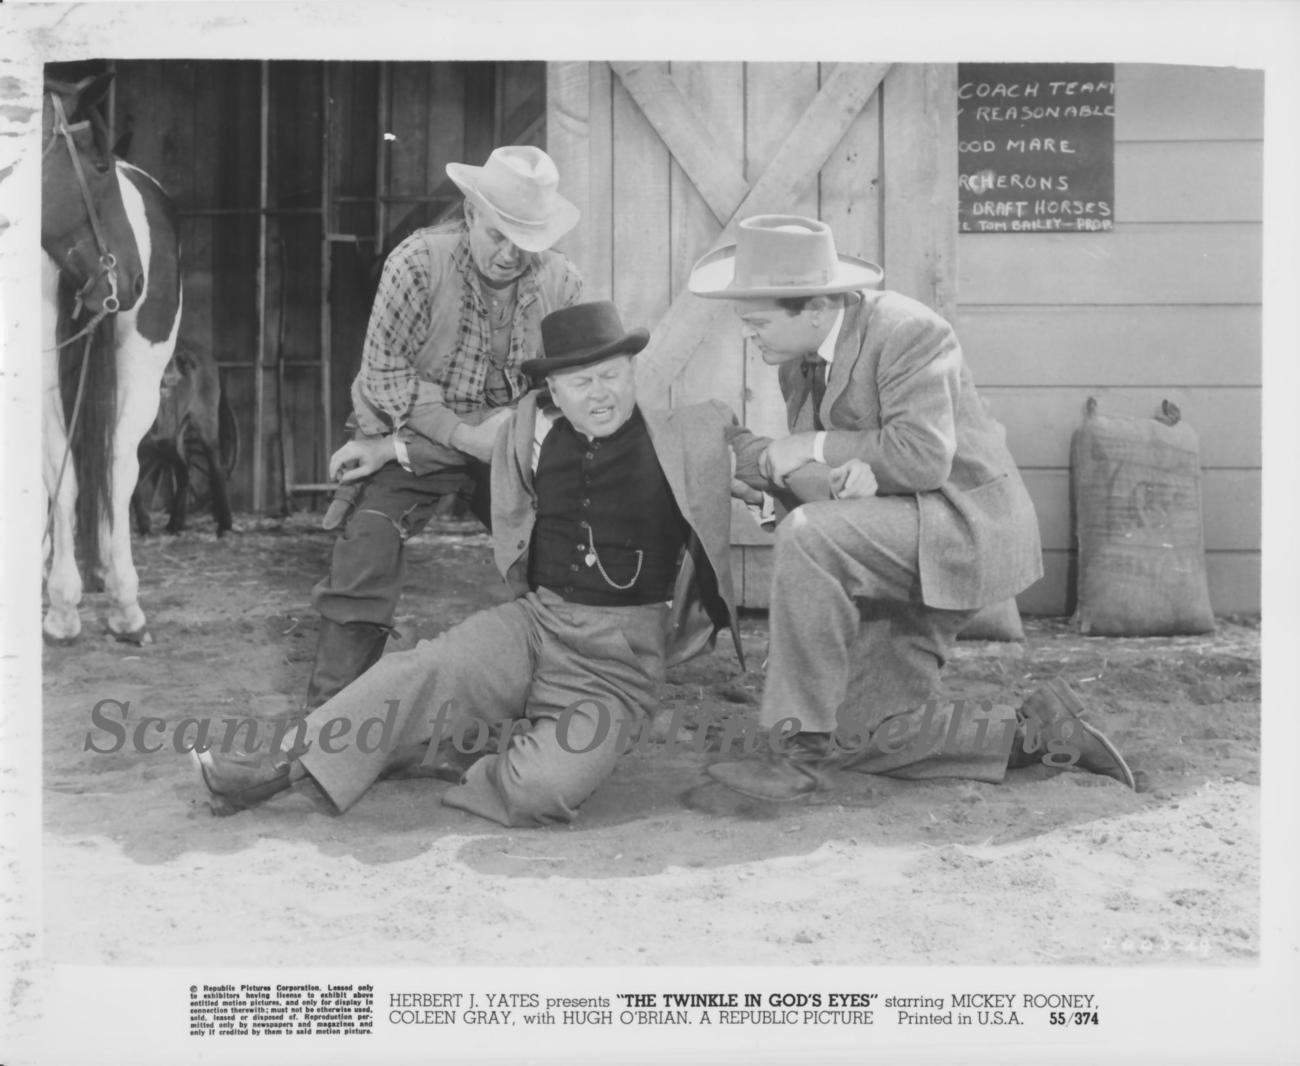 Twinkle in God's Eye Mickey Rooney Raymond Hatton 8x10Photo